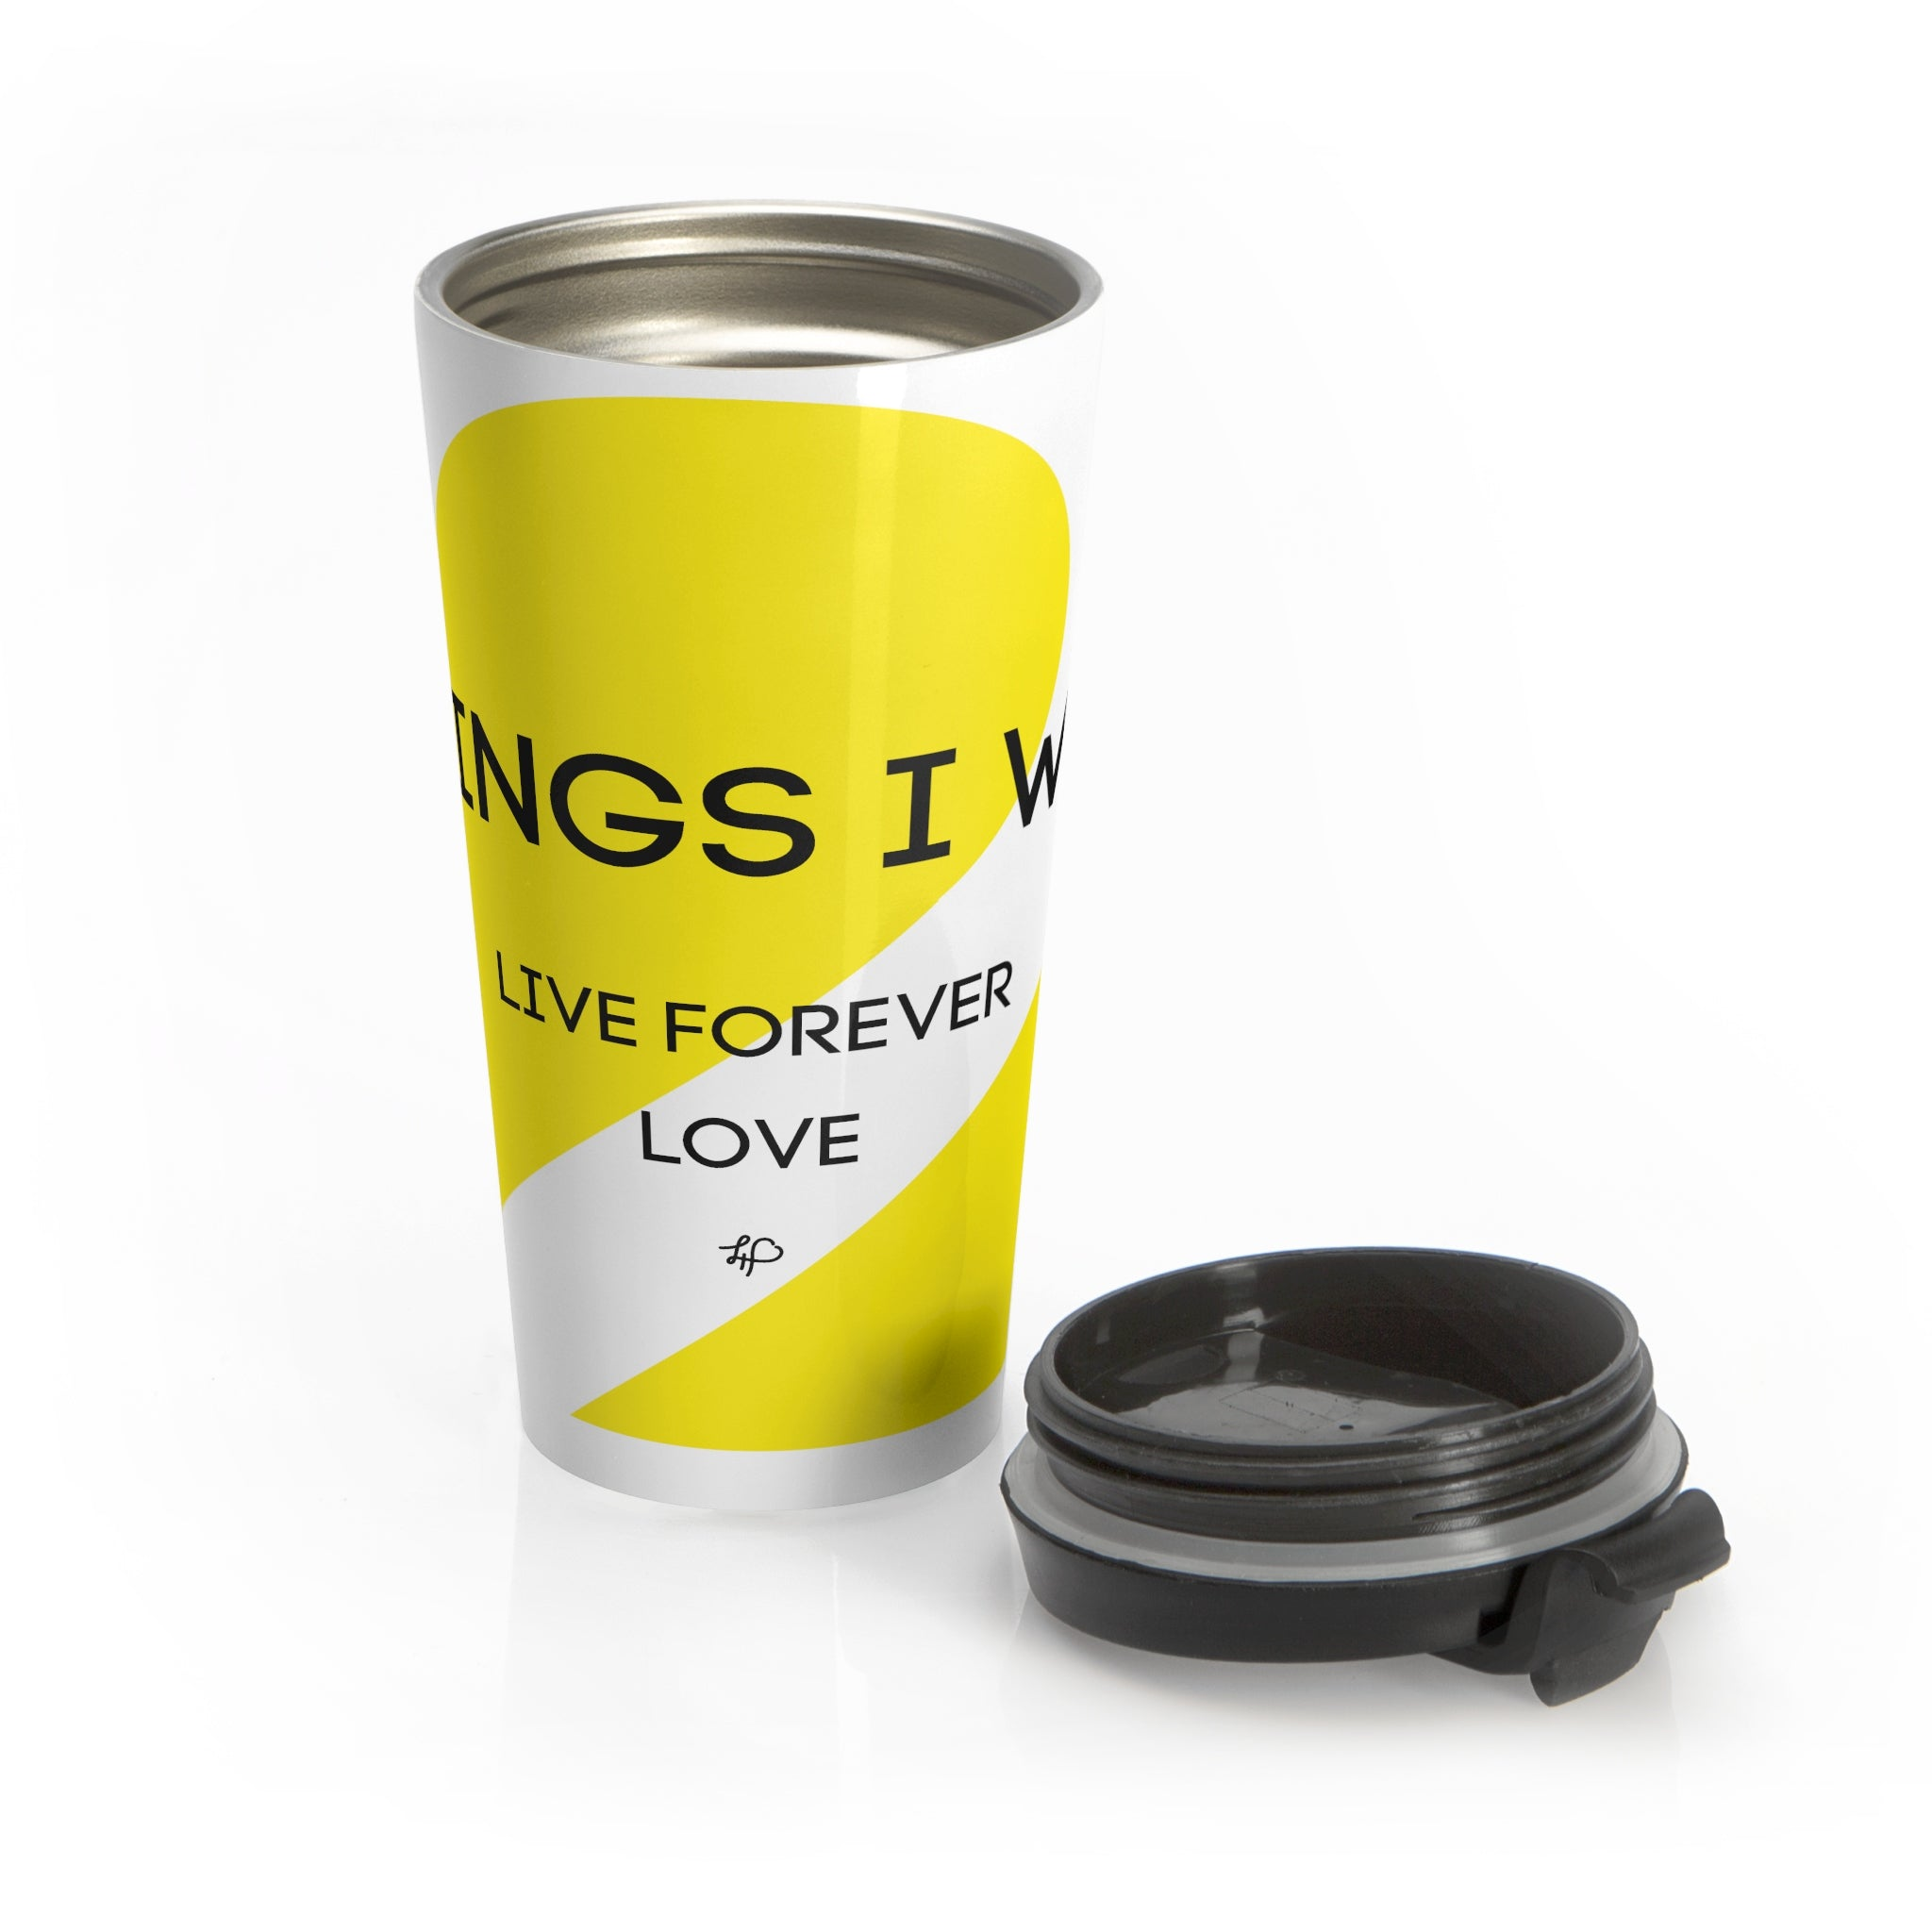 2 Things I Want: Stainless Steel Travel Mug